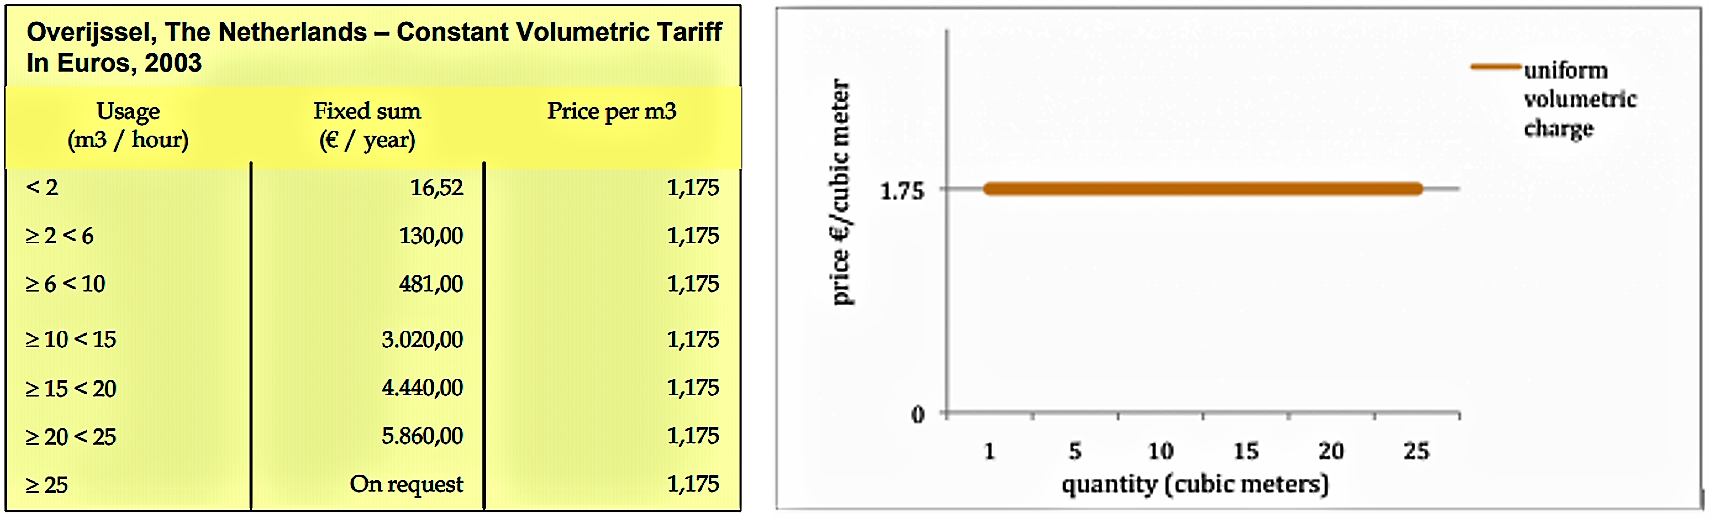 Price of water versus the quantity of water used. Both graph and table show how the price per unit of water remains constant independently of the use. Source: CARDONE & FONSECA (2003)